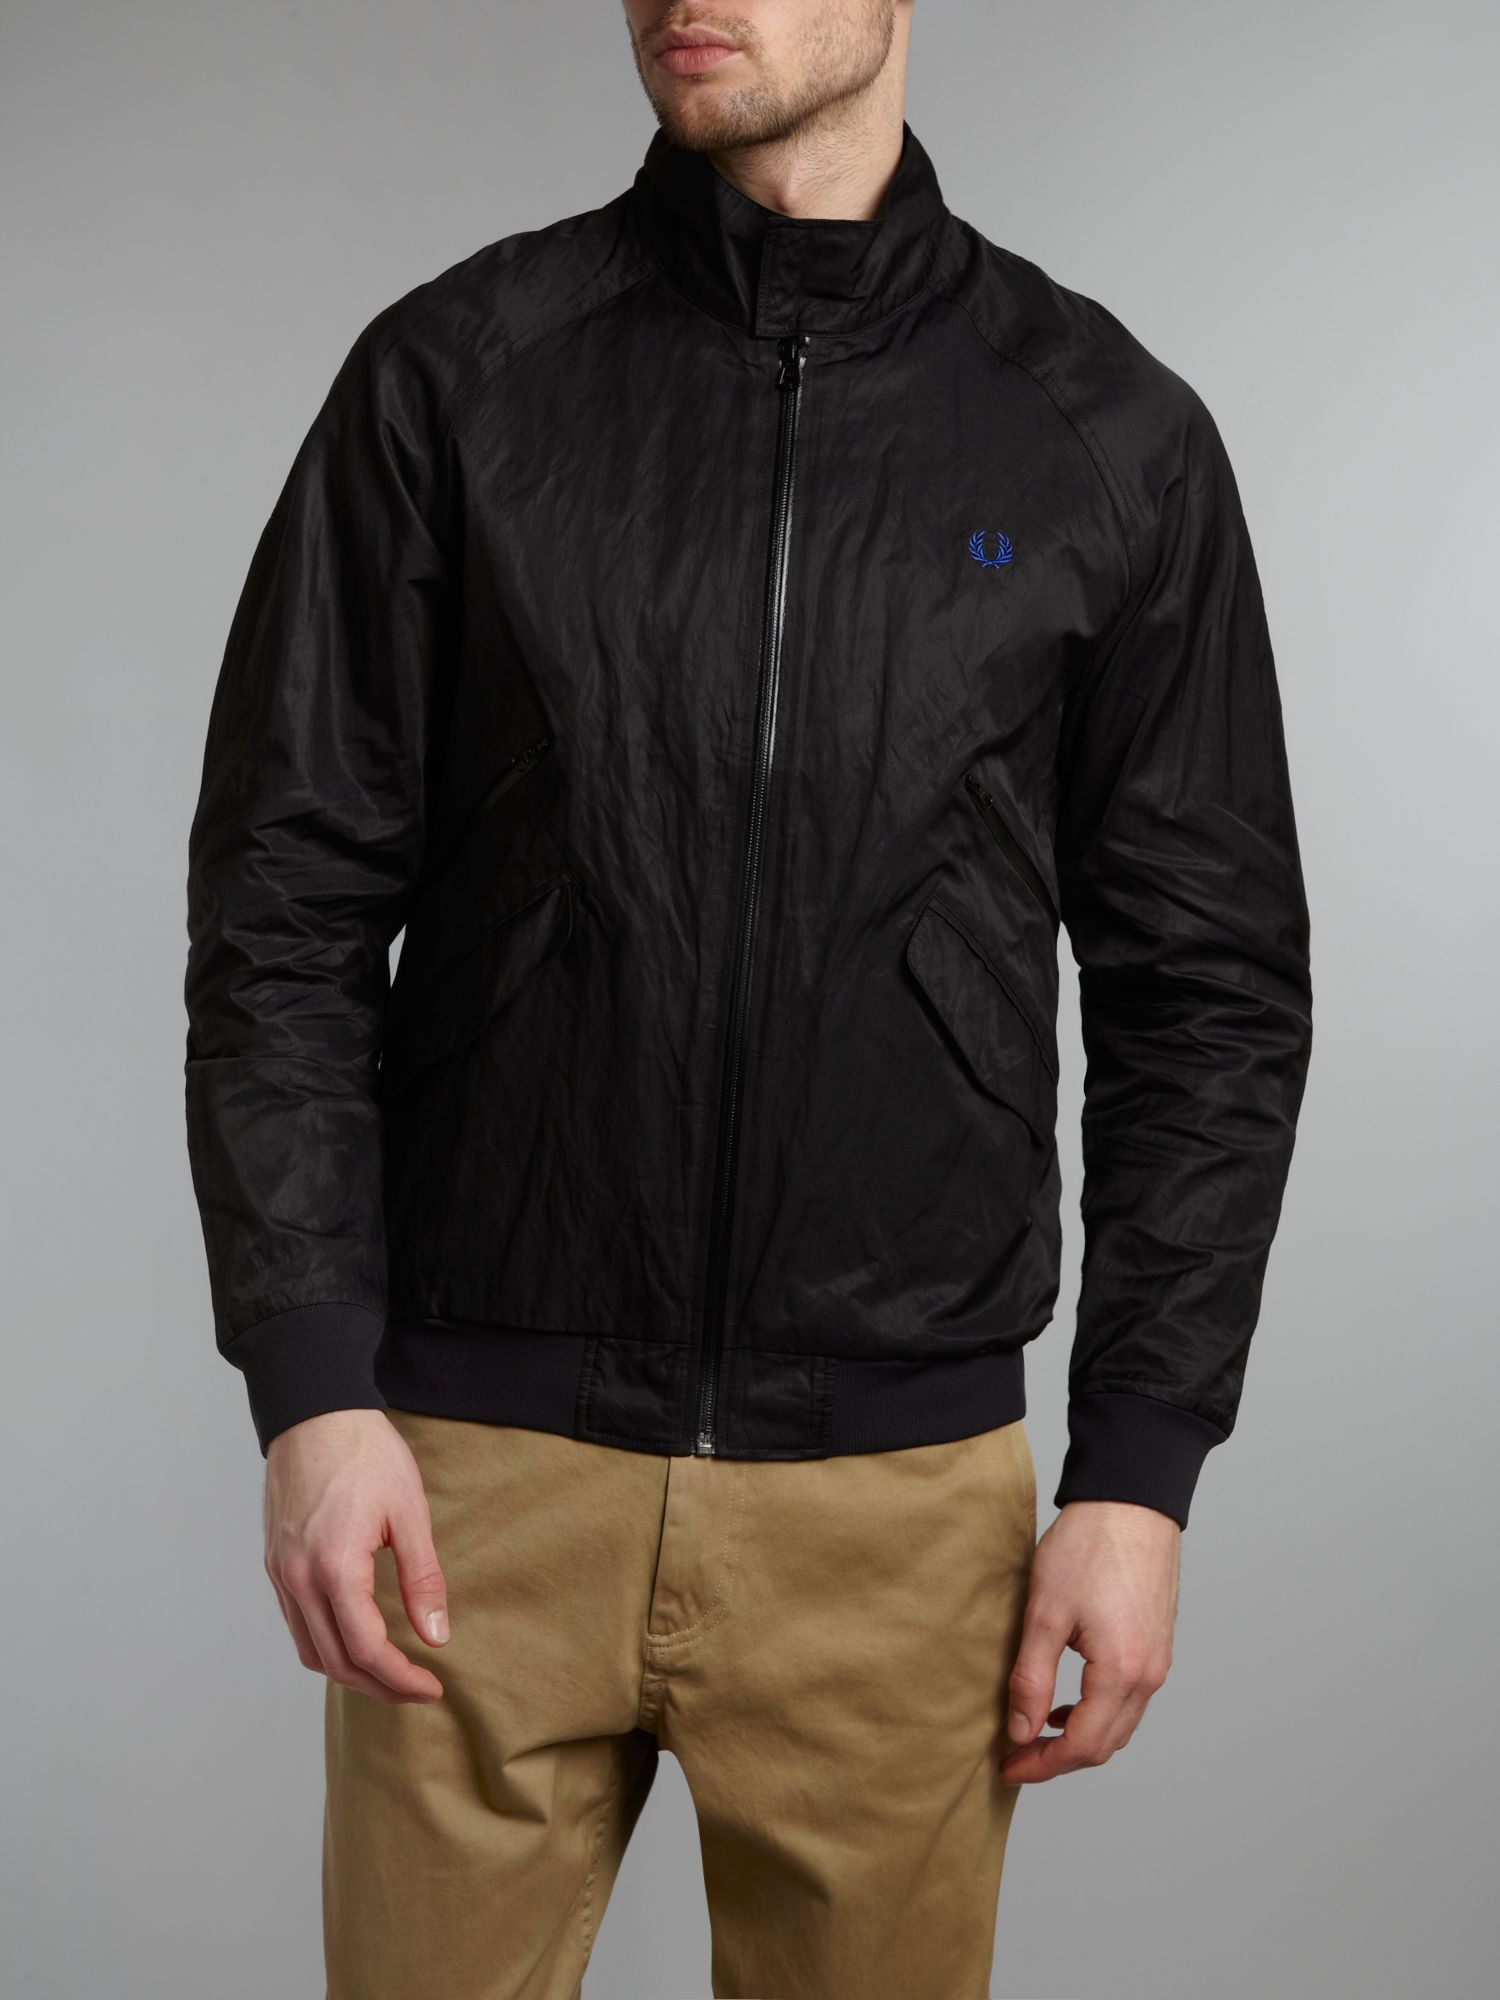 Fred Perry Capsule Sport Technical Harrington Jacket in Black for Men